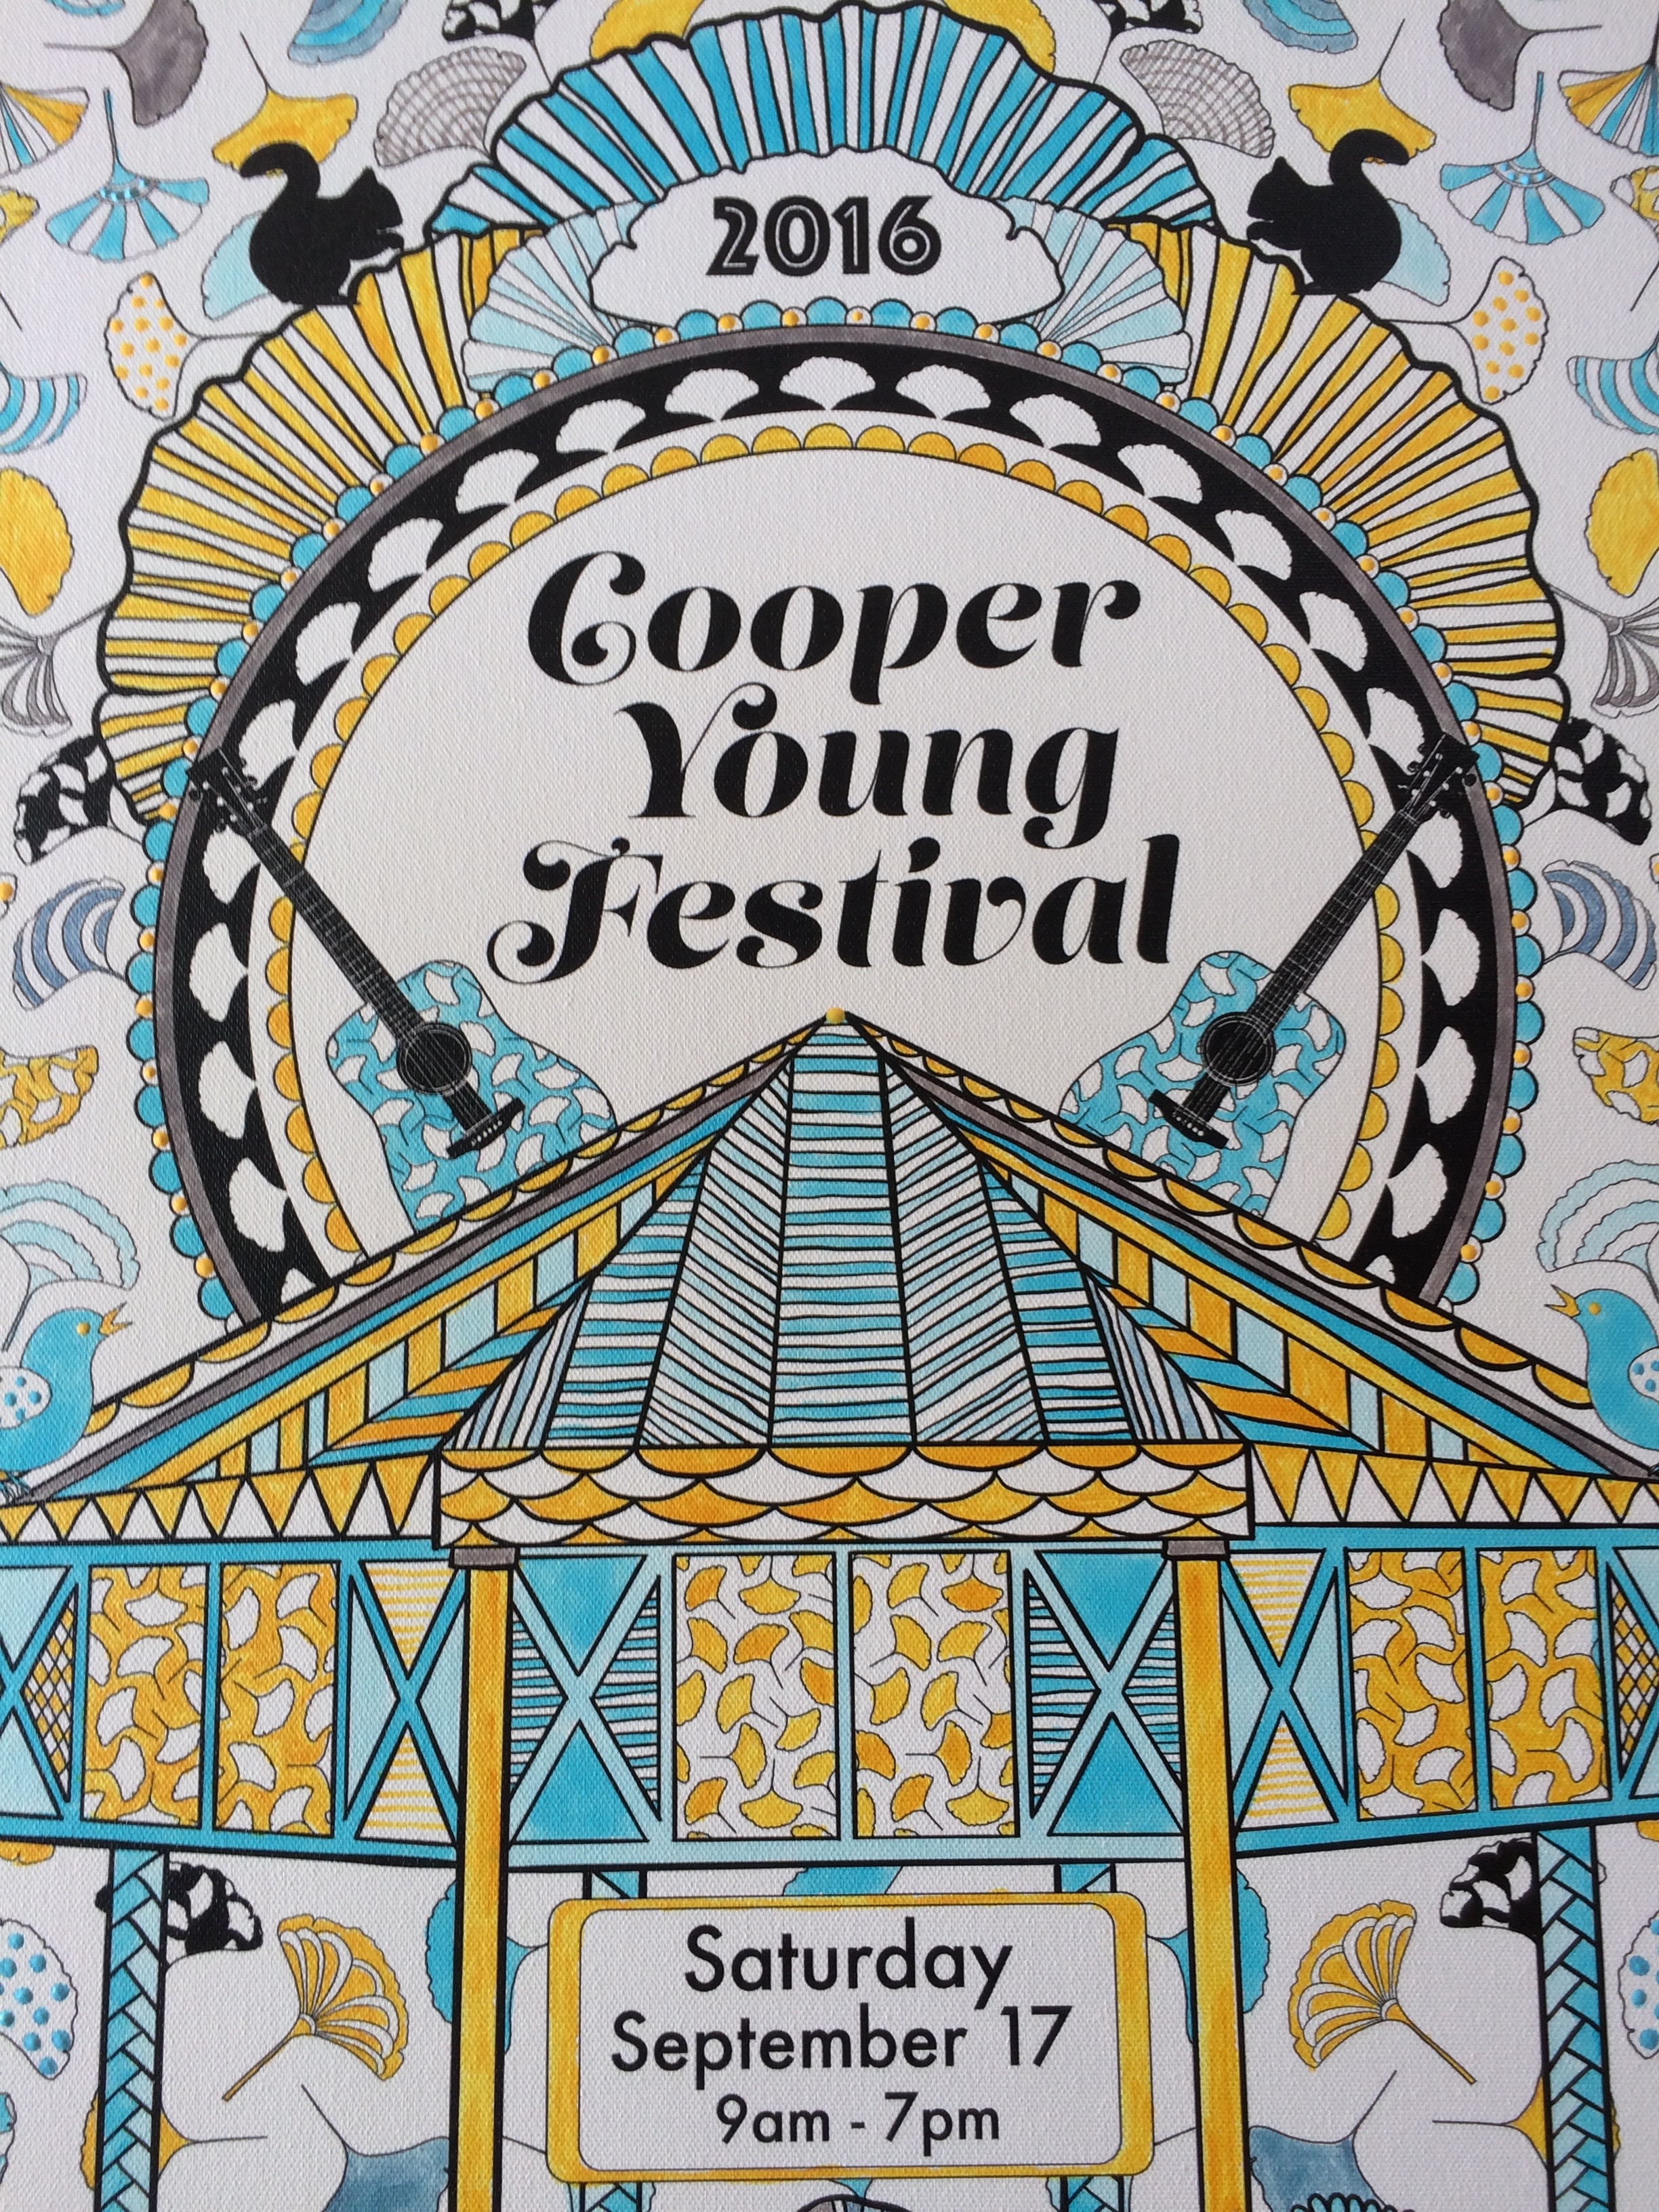 Cooper Young Festival Poster 2016 by Jenean Morrison